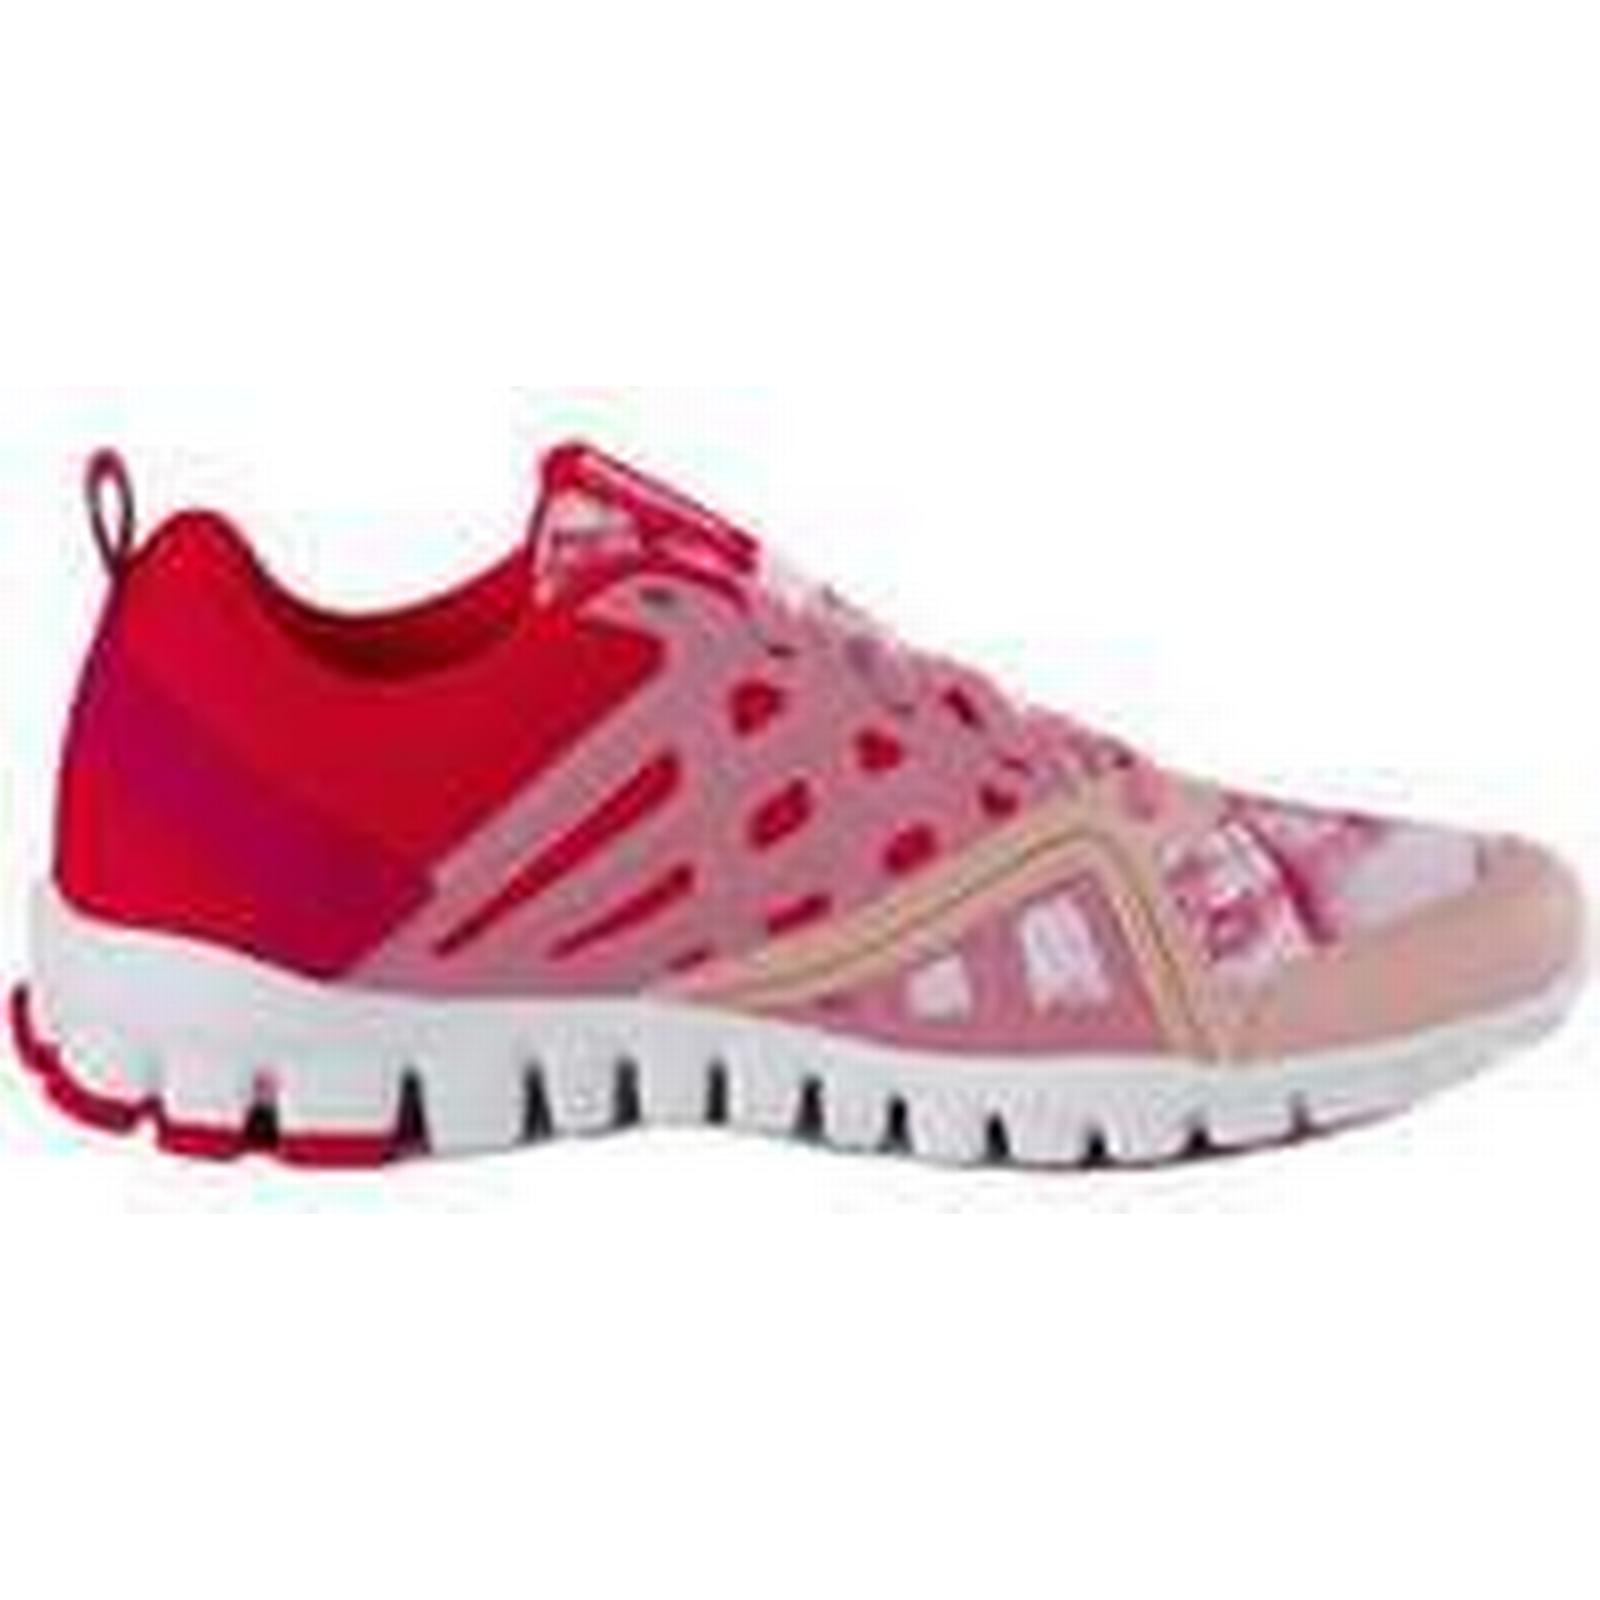 Spartoo uk Sport Former Reebok Realflex co vS6xvrqB